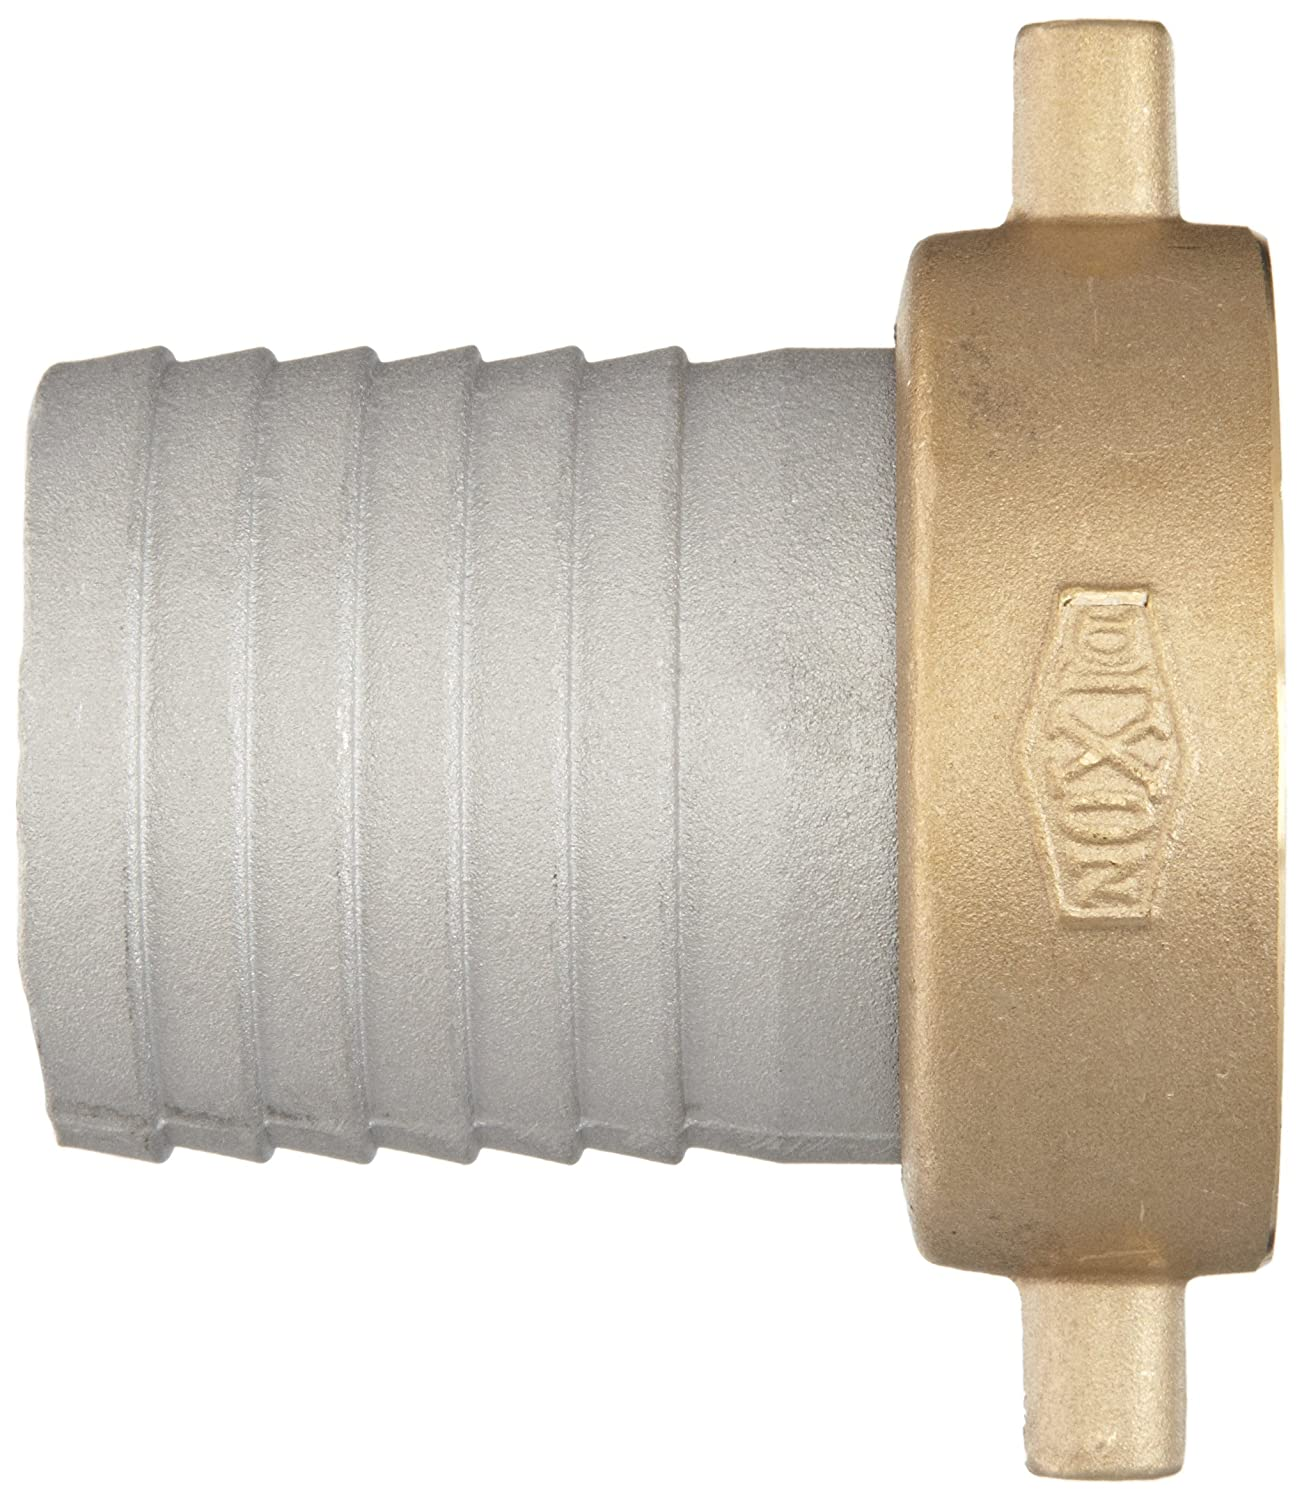 Dixon FAB200 Aluminum Hose Fitting King Short Shank Suction Coupling with Brass Nut 2 NPSM Female x 2 Hose ID Barbed 2 NPSM Female x 2 Hose ID Barbed Dixon Valve /& Coupling